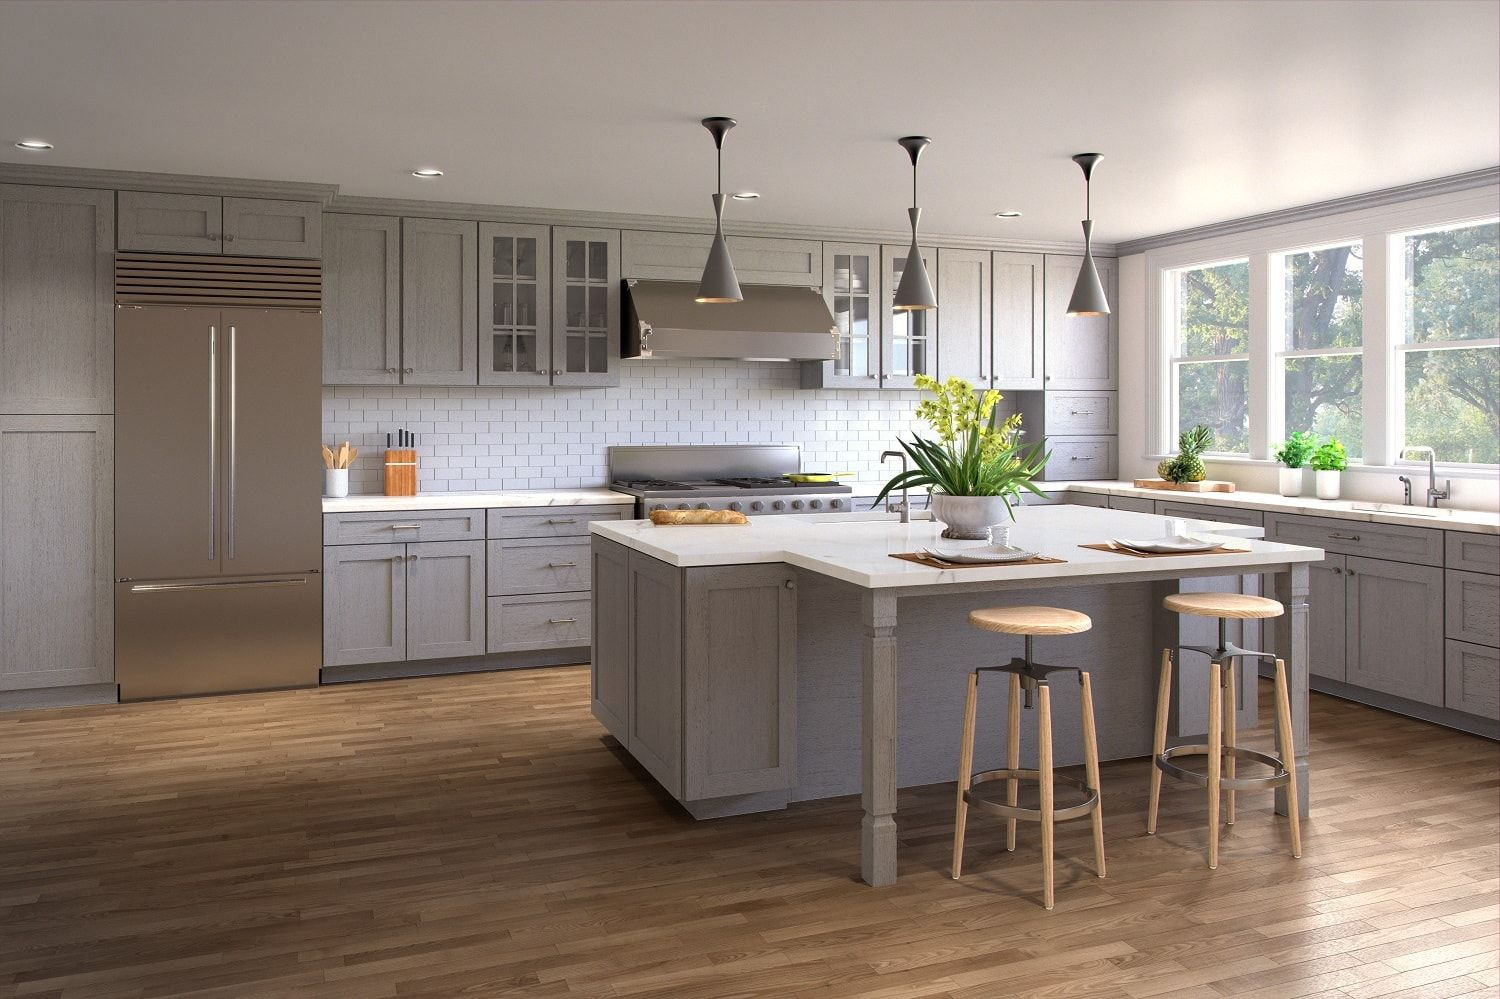 Beautiful Shaker Style Kitchen Cabinets Light Grey Kitchen Cabinets Shaker Style Kitchen Cabinets Kitchen Cabinet Styles